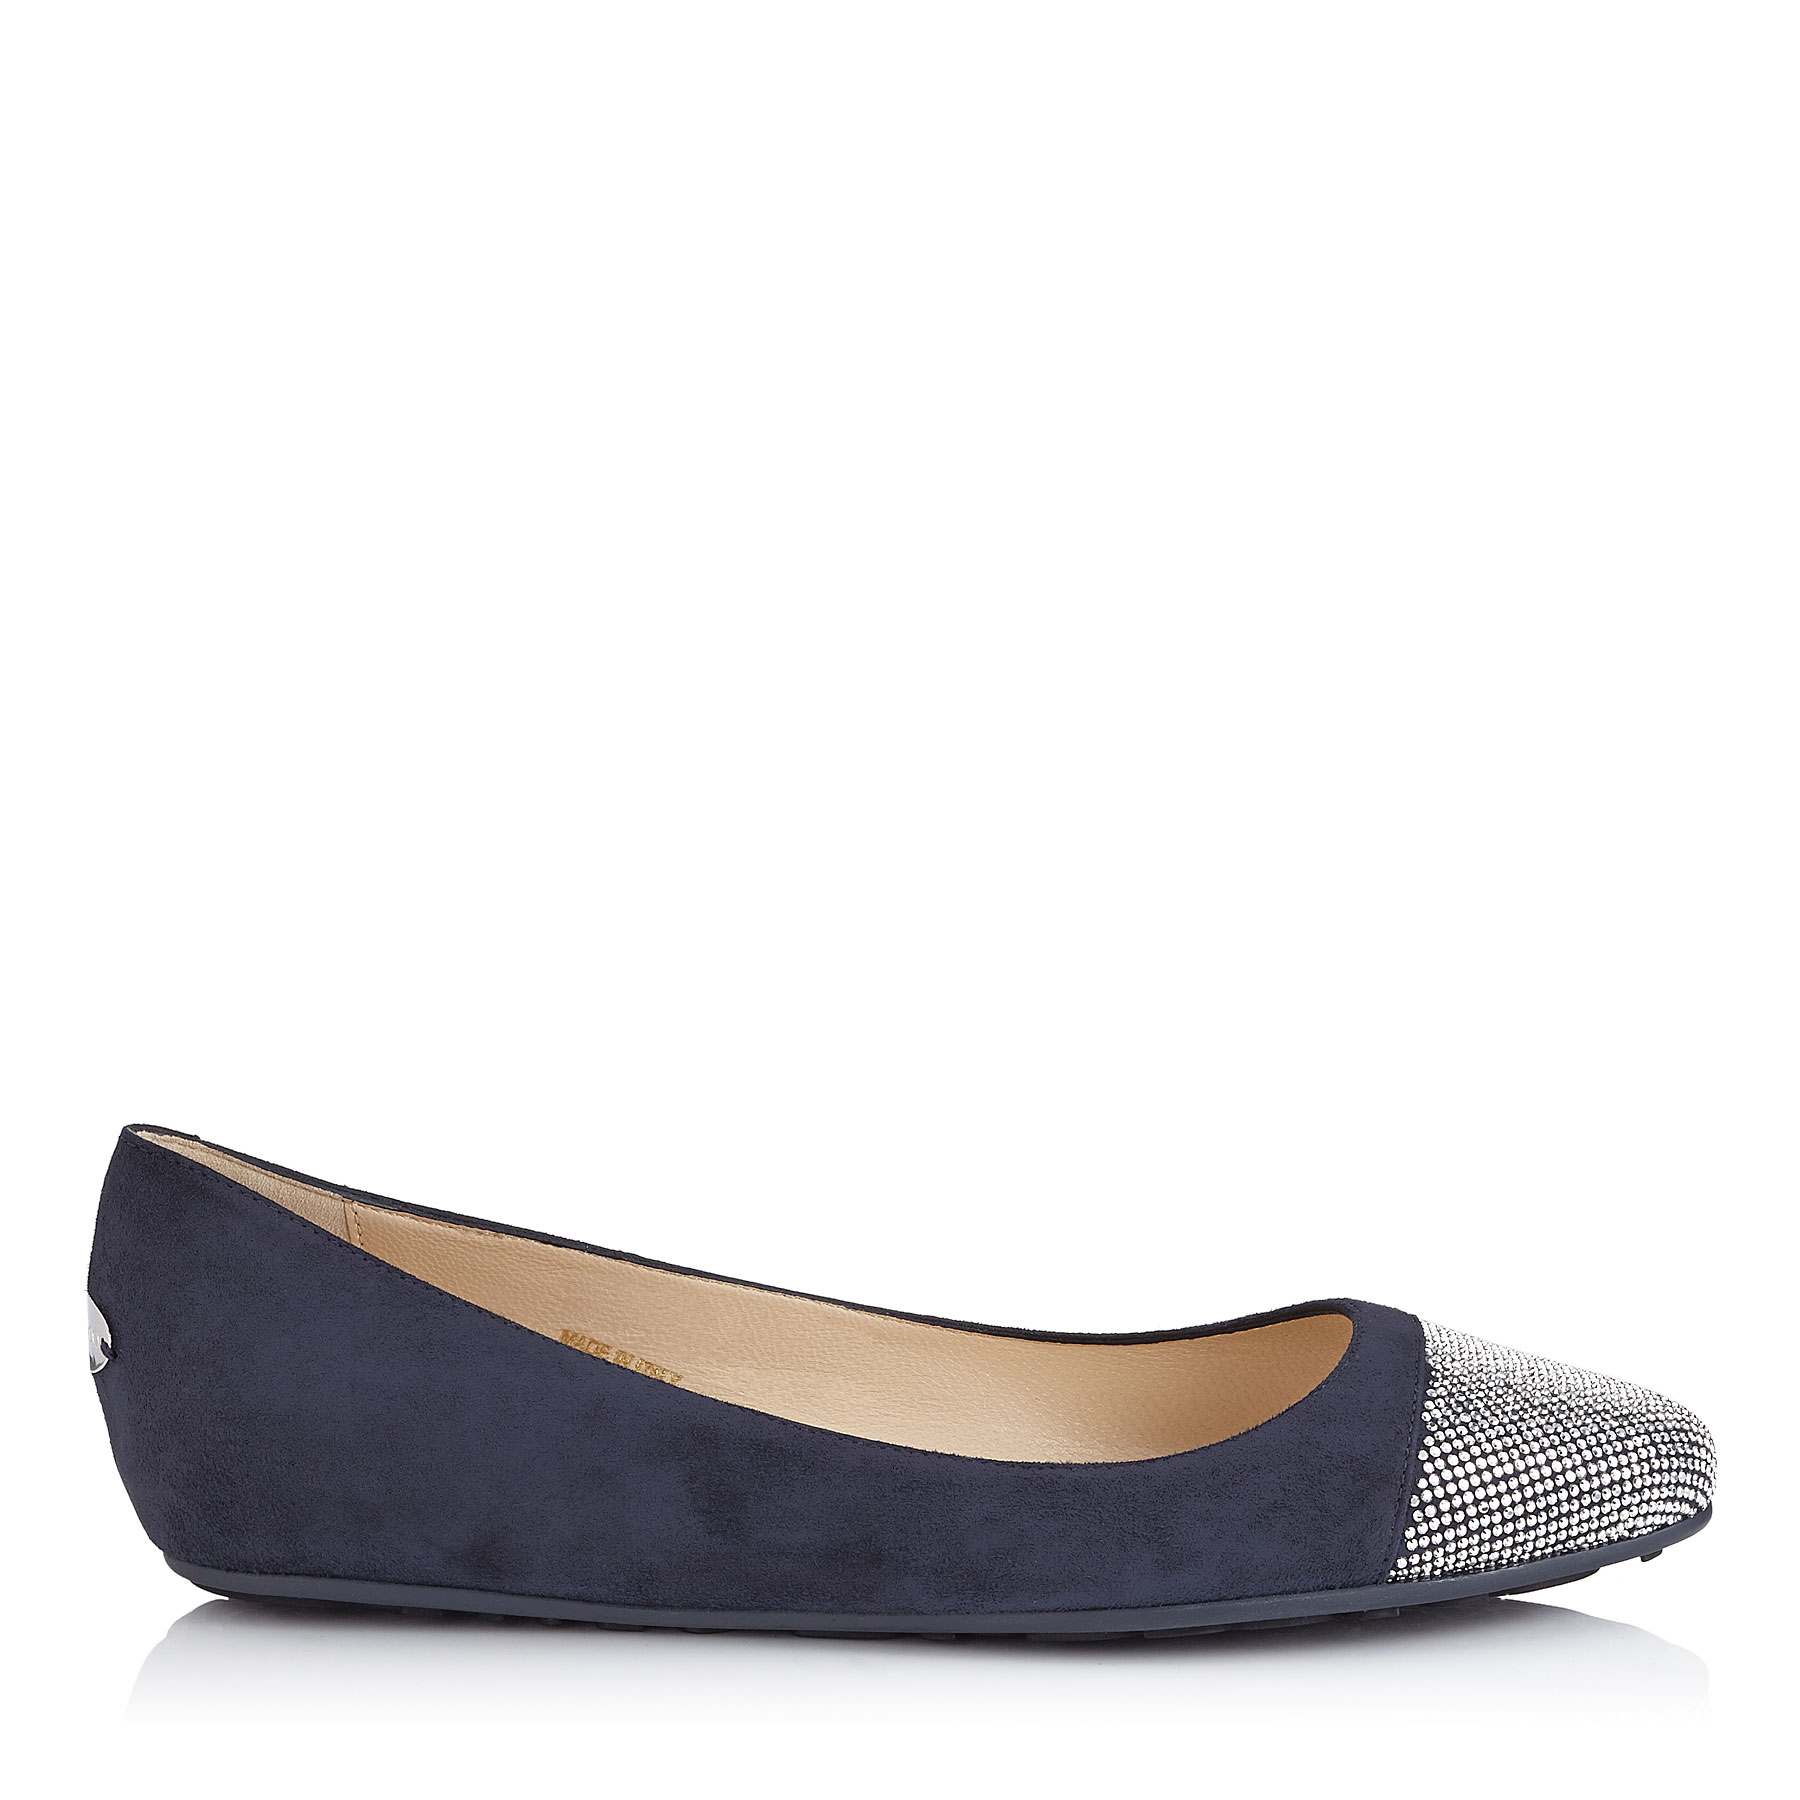 WAINE Navy Suede and Metal Micro studs Ballet Flats